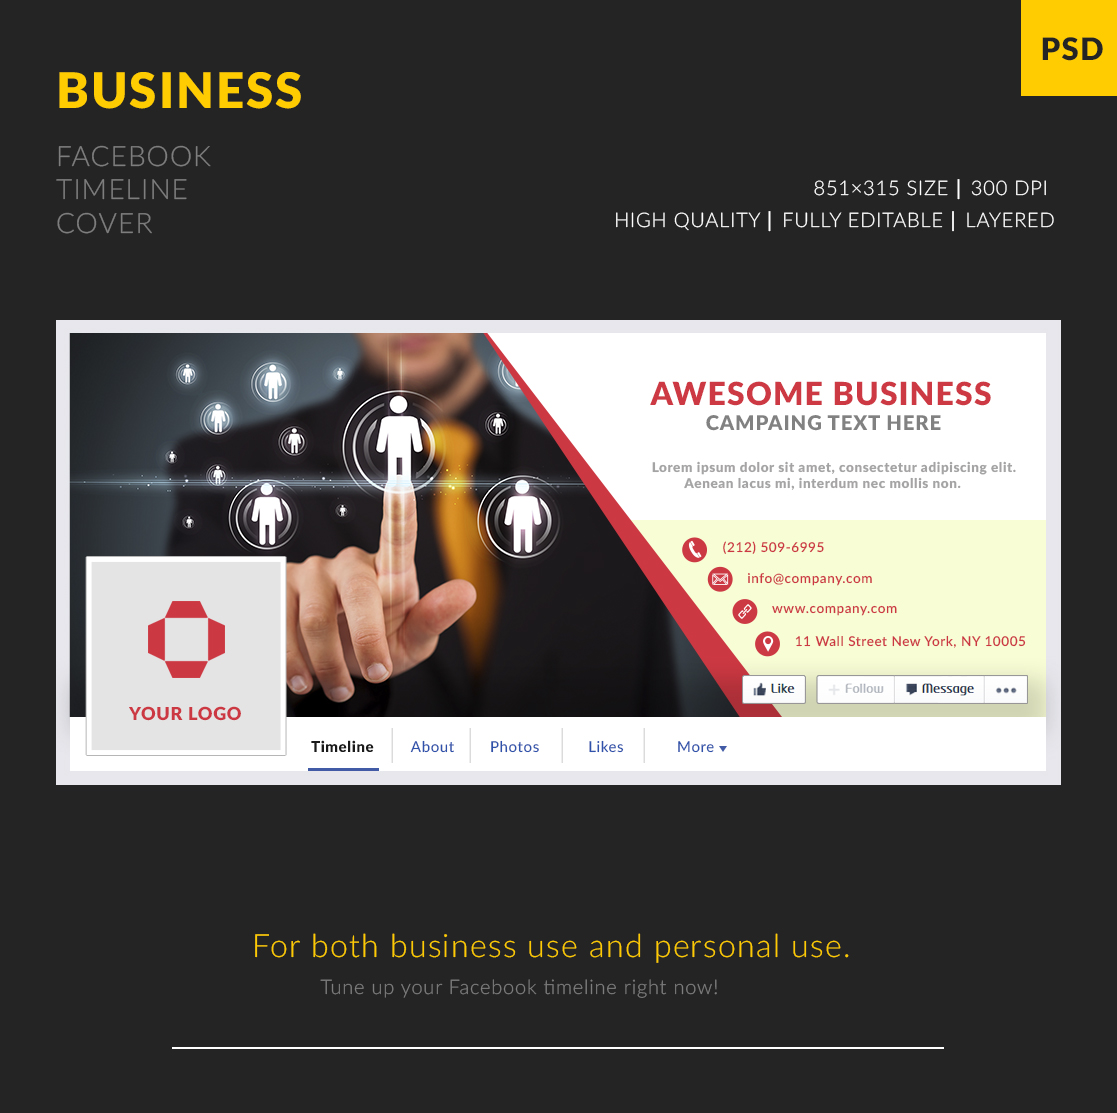 Free business facebook cover template freebies fribly october 15 2015 comments 0 views 2677 freebies pronofoot35fo Gallery